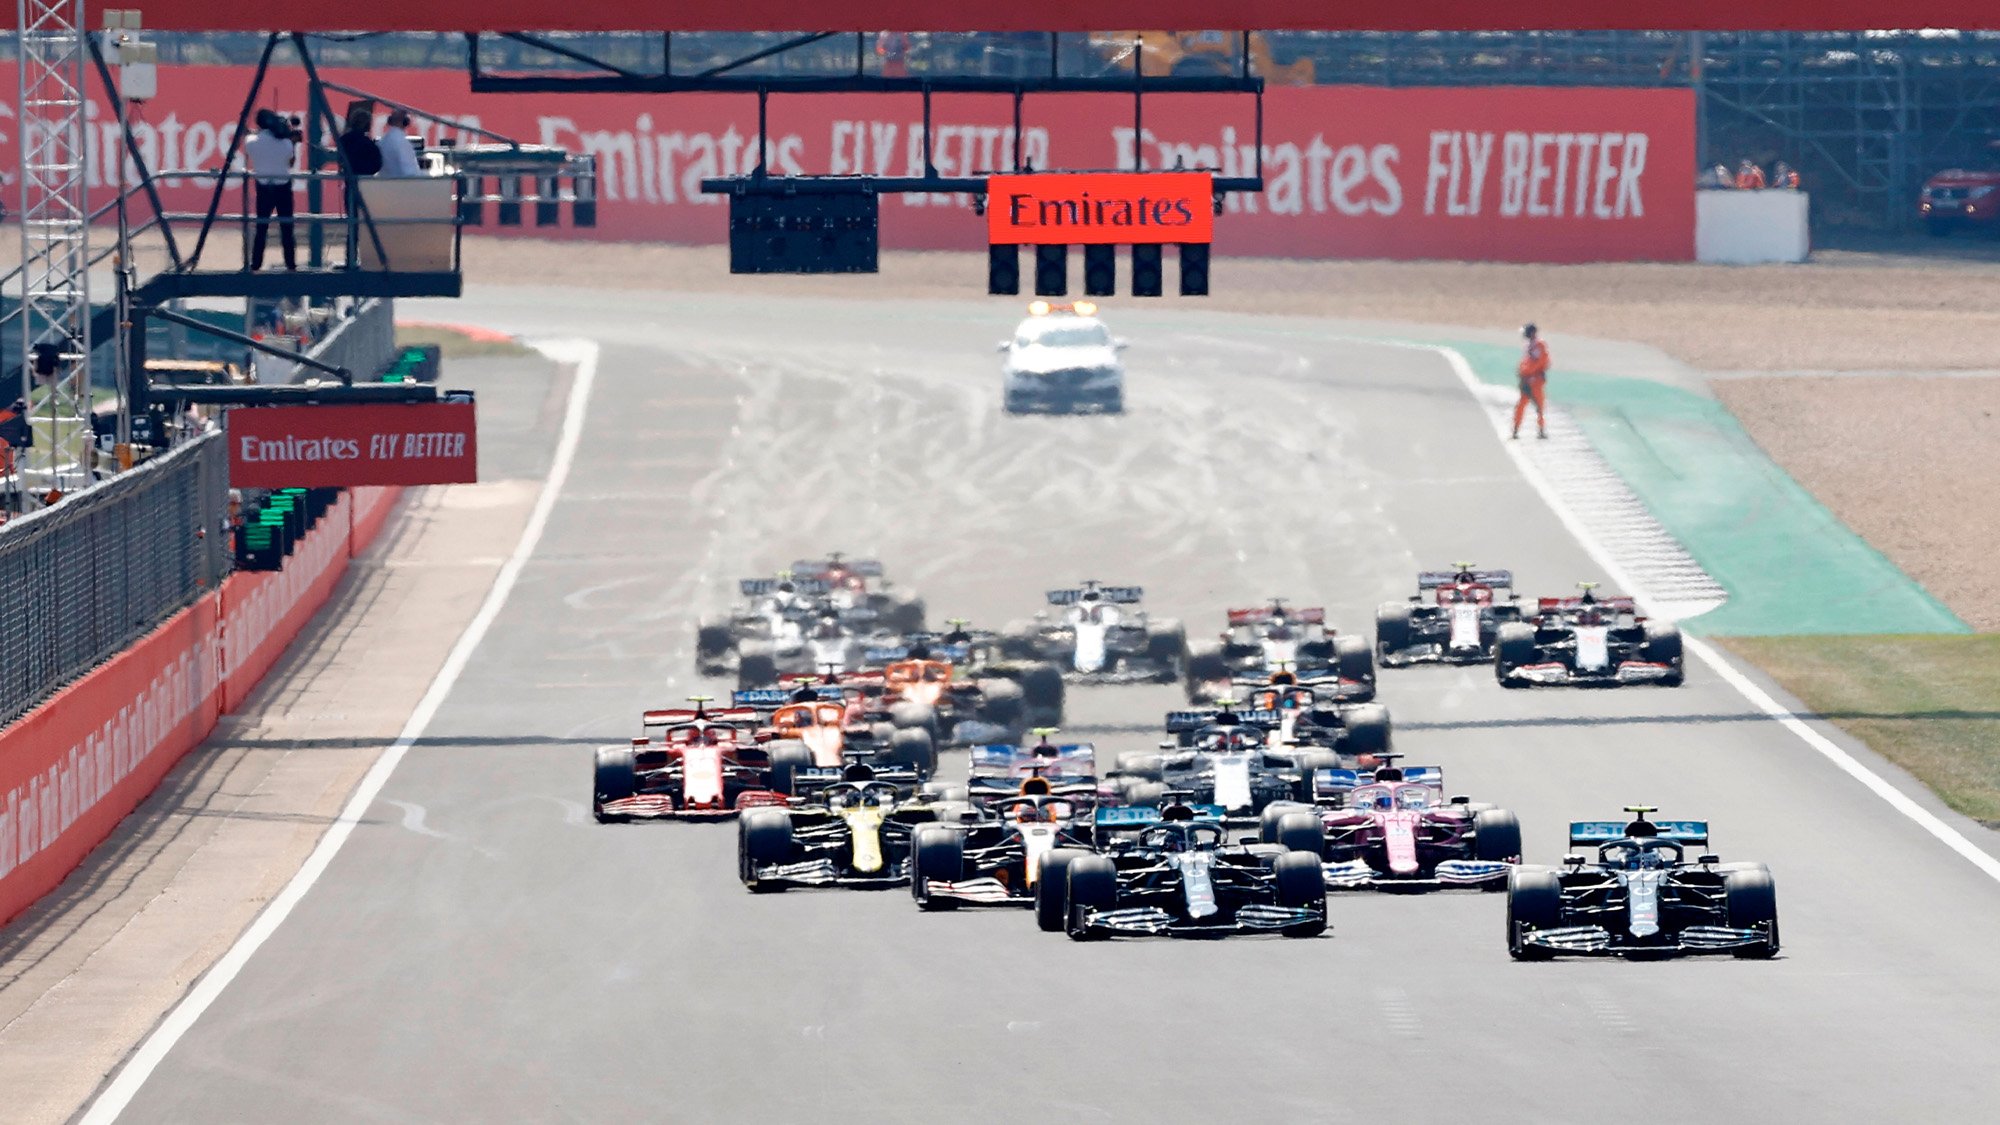 Start of the 2020 F1 70th anniversary Grand Prix at Silverstone